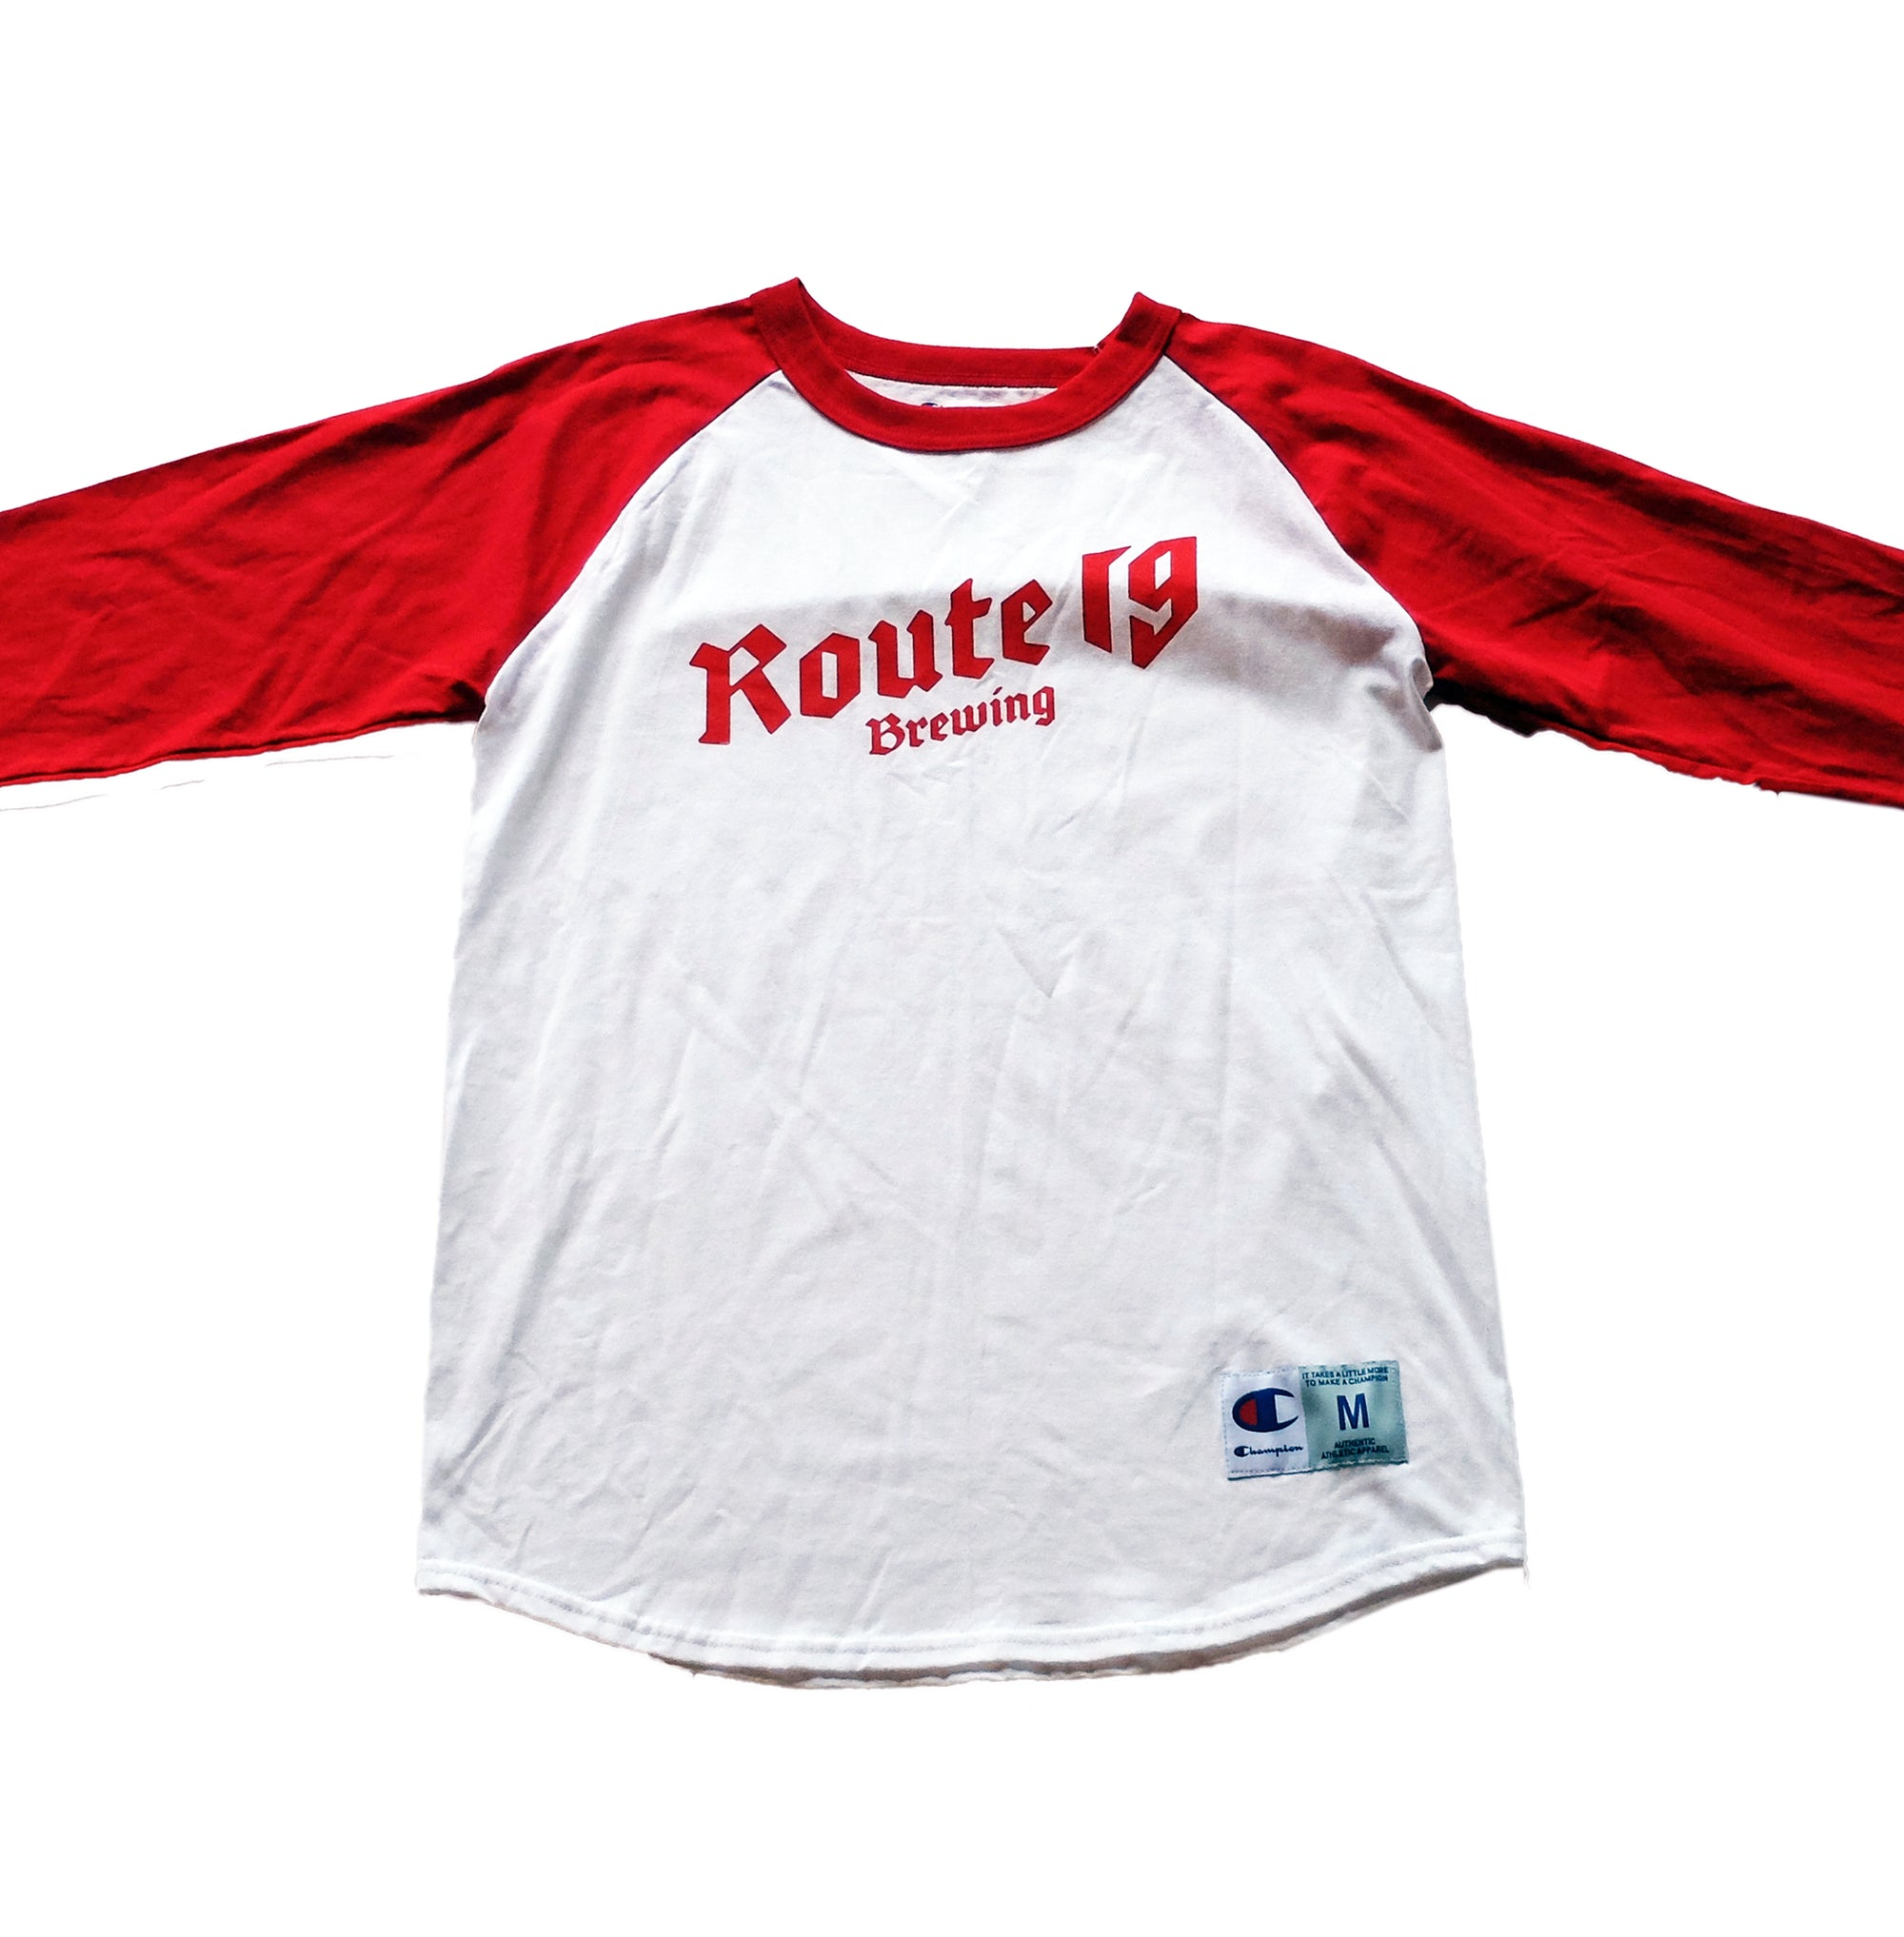 Baseball Shirt - Champion Youth 'Route 19 Brewing'